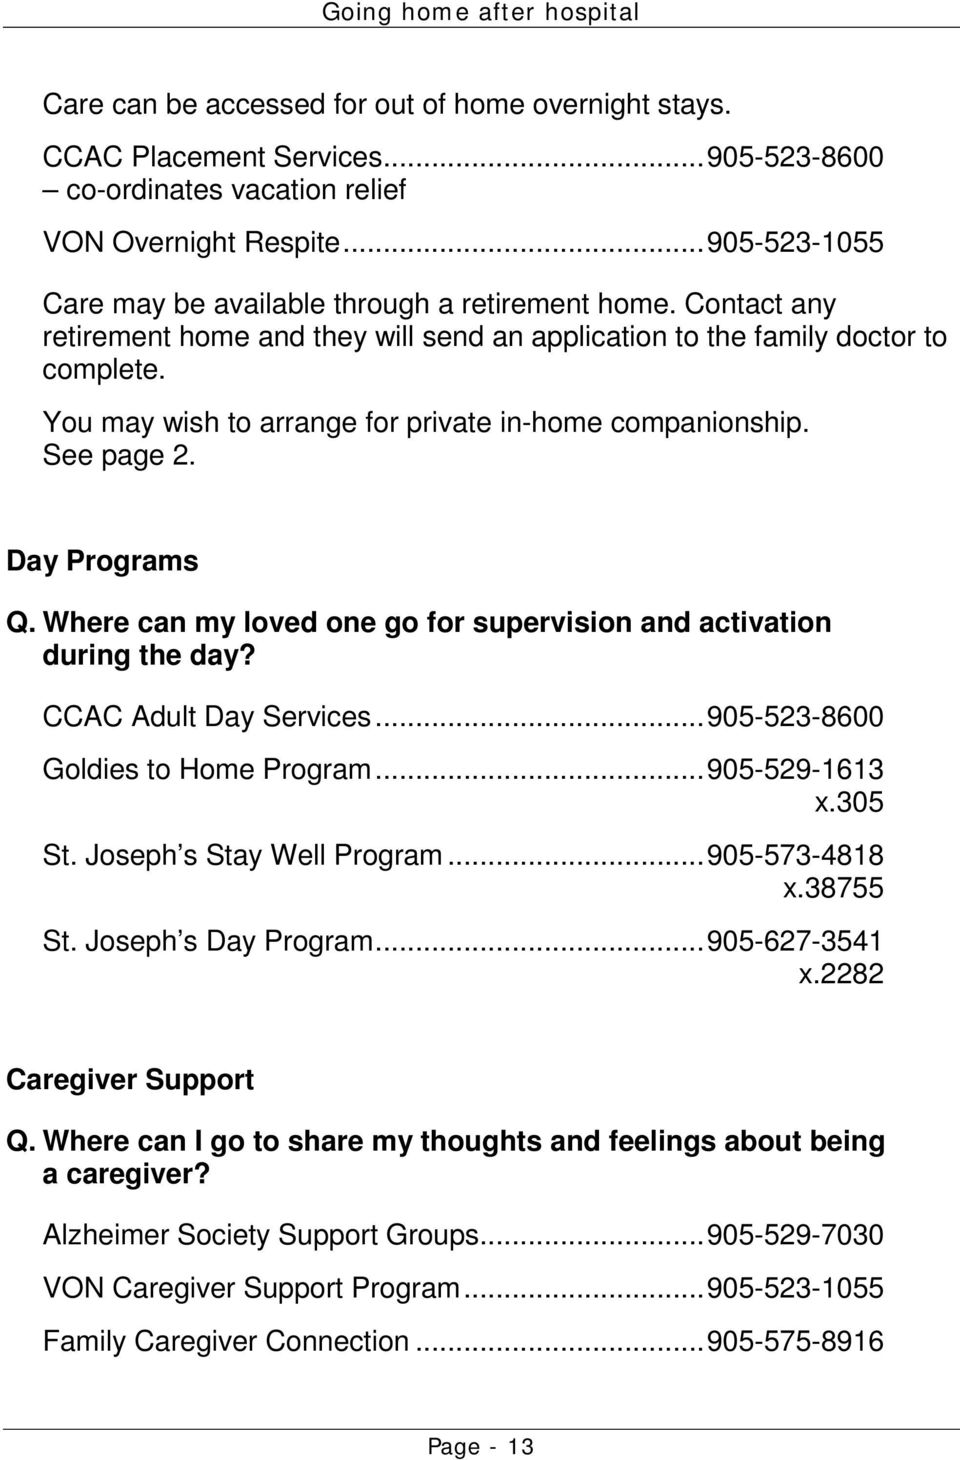 You may wish to arrange for private in-home companionship. See page 2. Day Programs Q. Where can my loved one go for supervision and activation during the day? CCAC Adult Day Services.